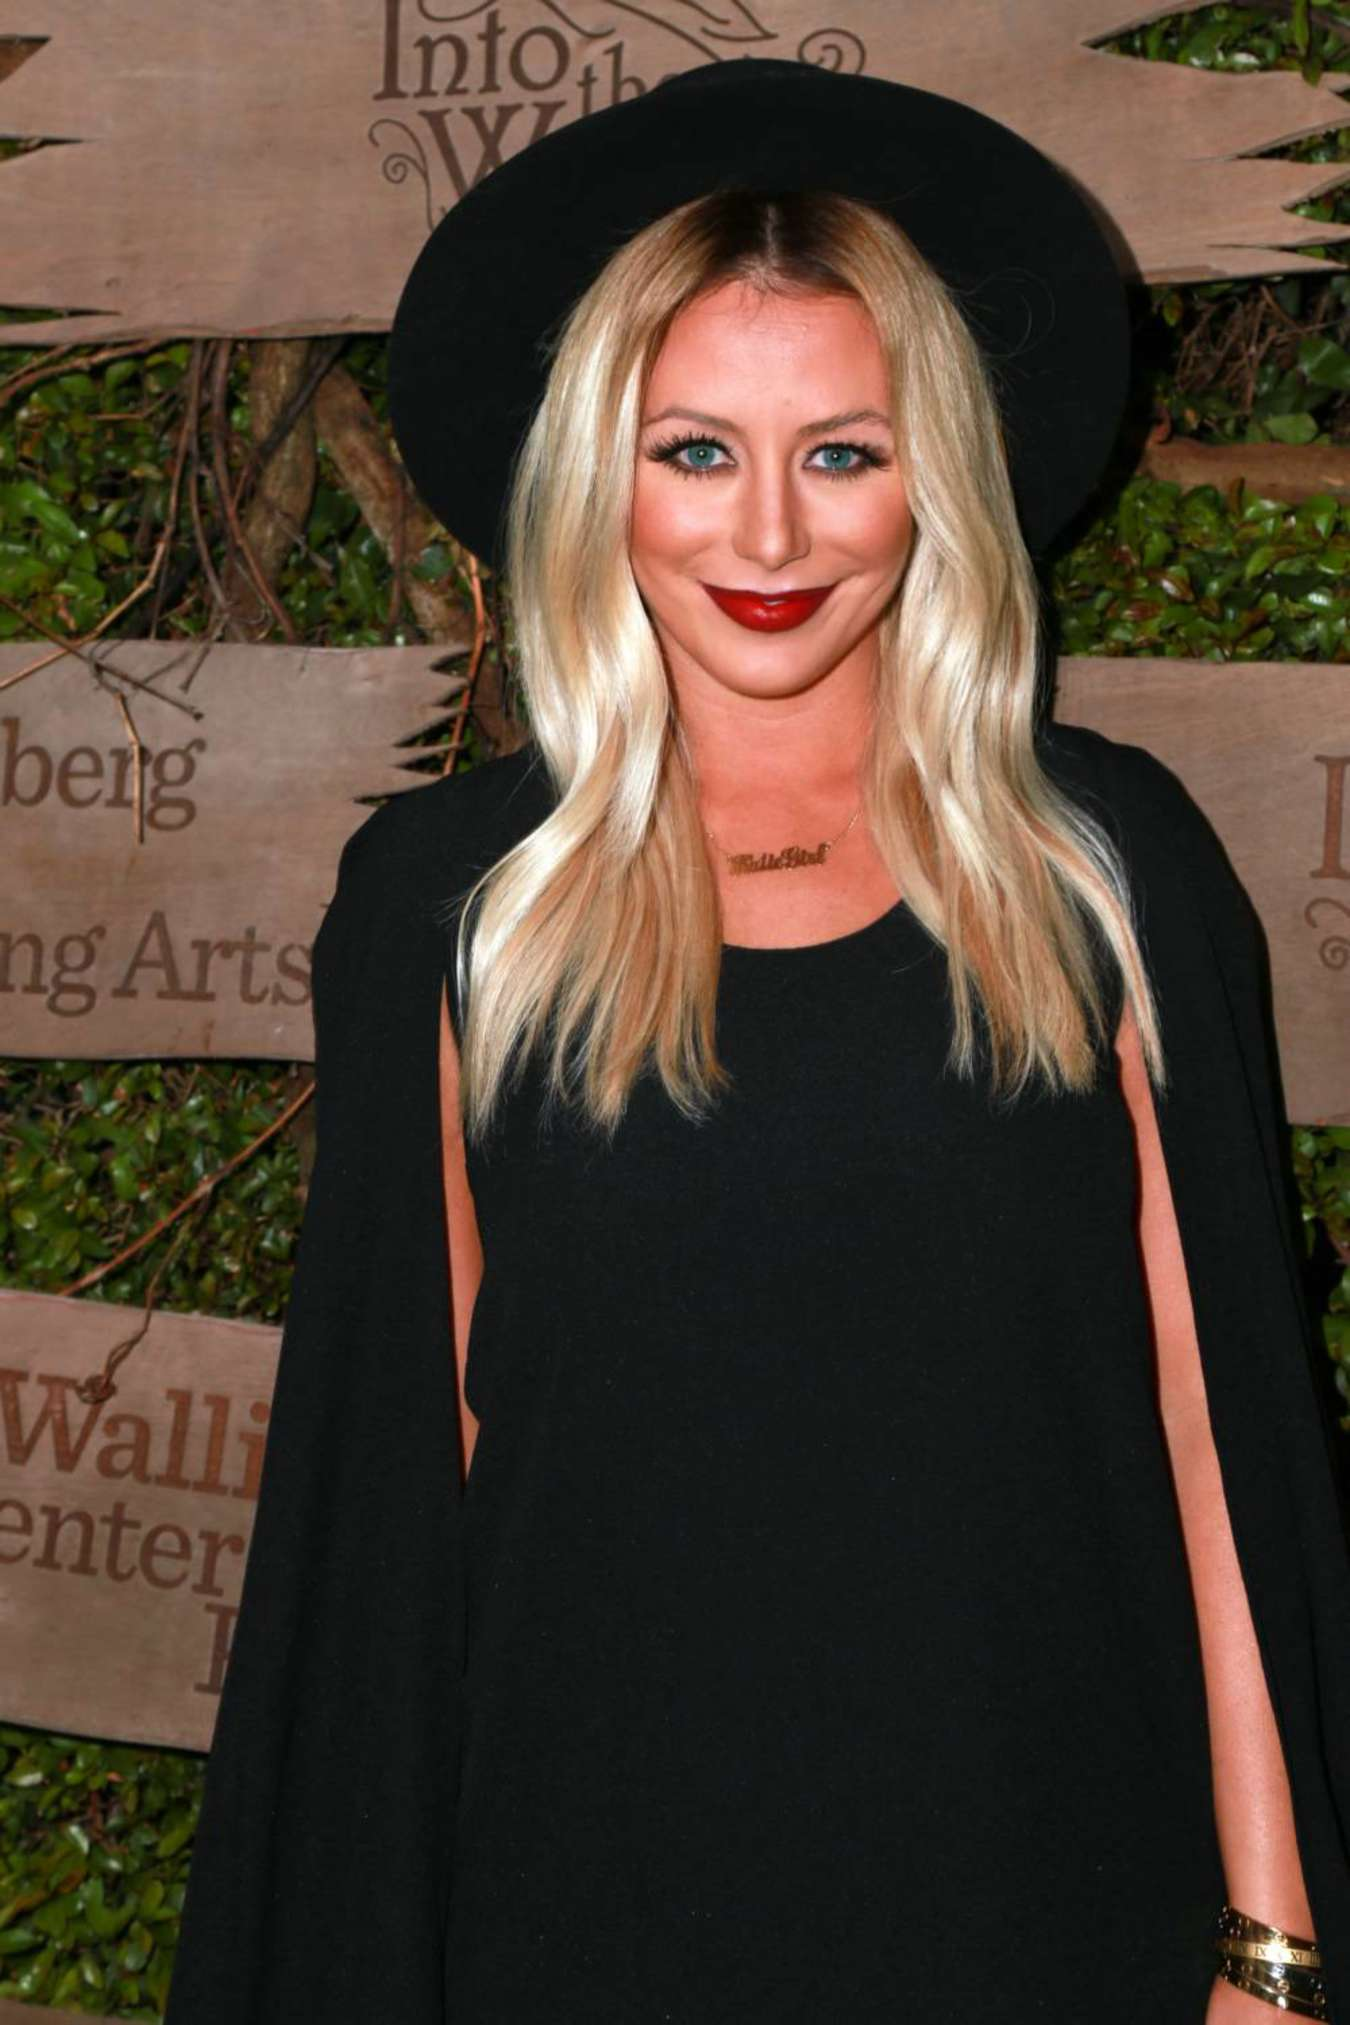 Aubrey ODay Attends the opening night of Into the Woods Event in Beverly Hills